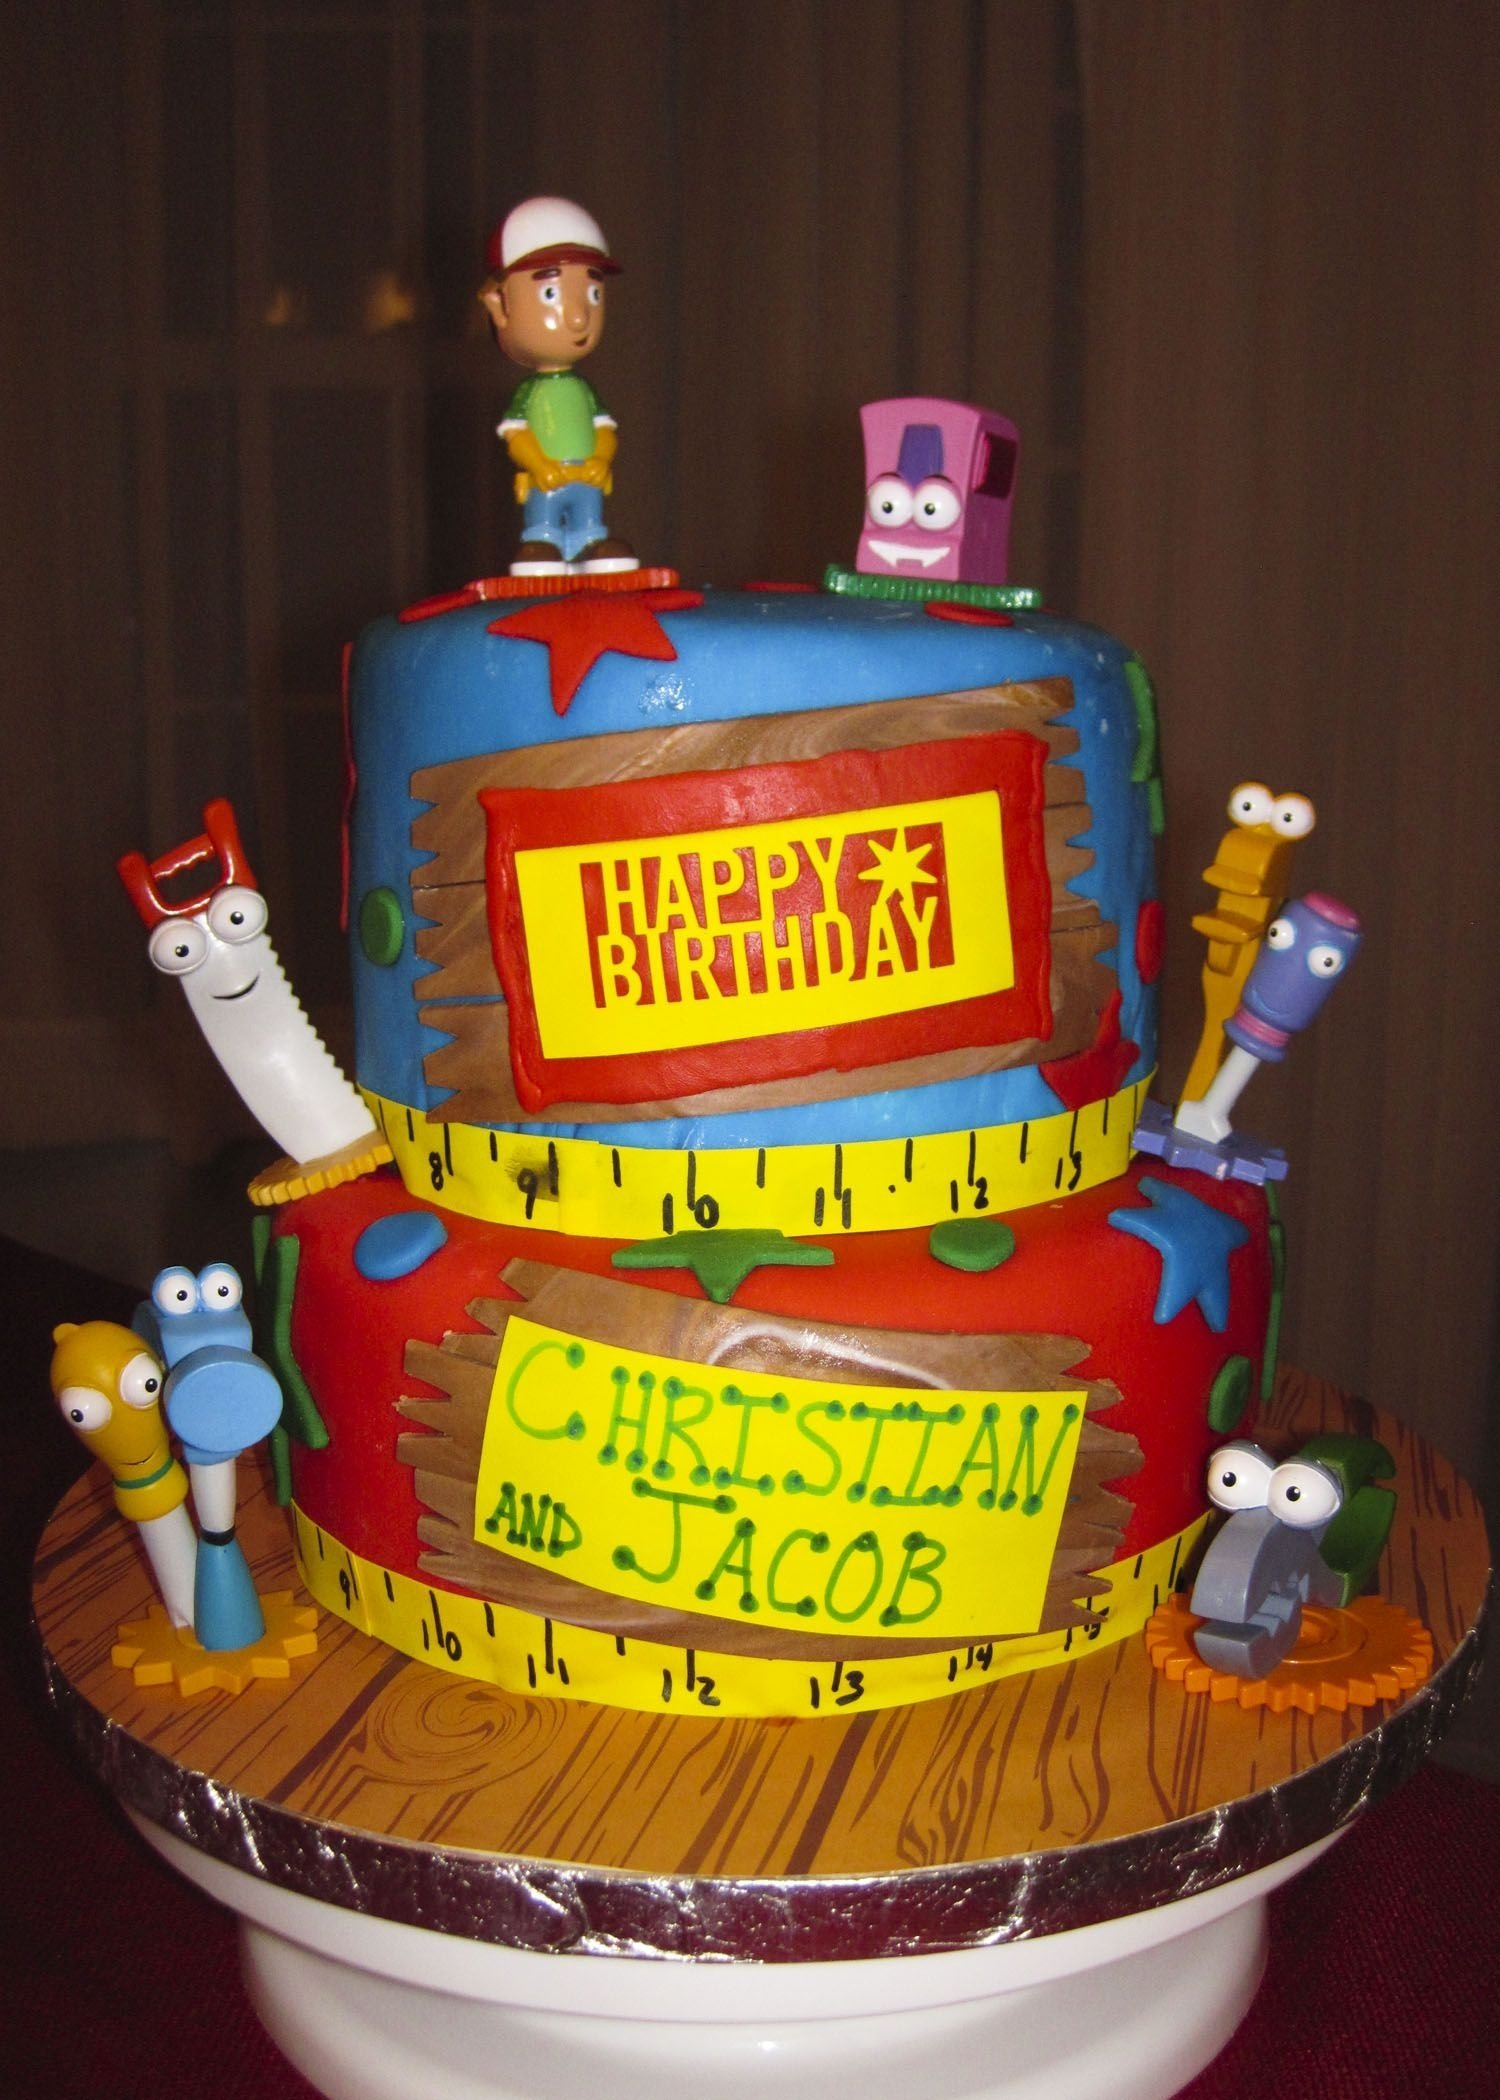 10 Amazing Handy Manny Birthday Party Ideas christian and jacobs 3rd birthday handy manny cake cakes 2020